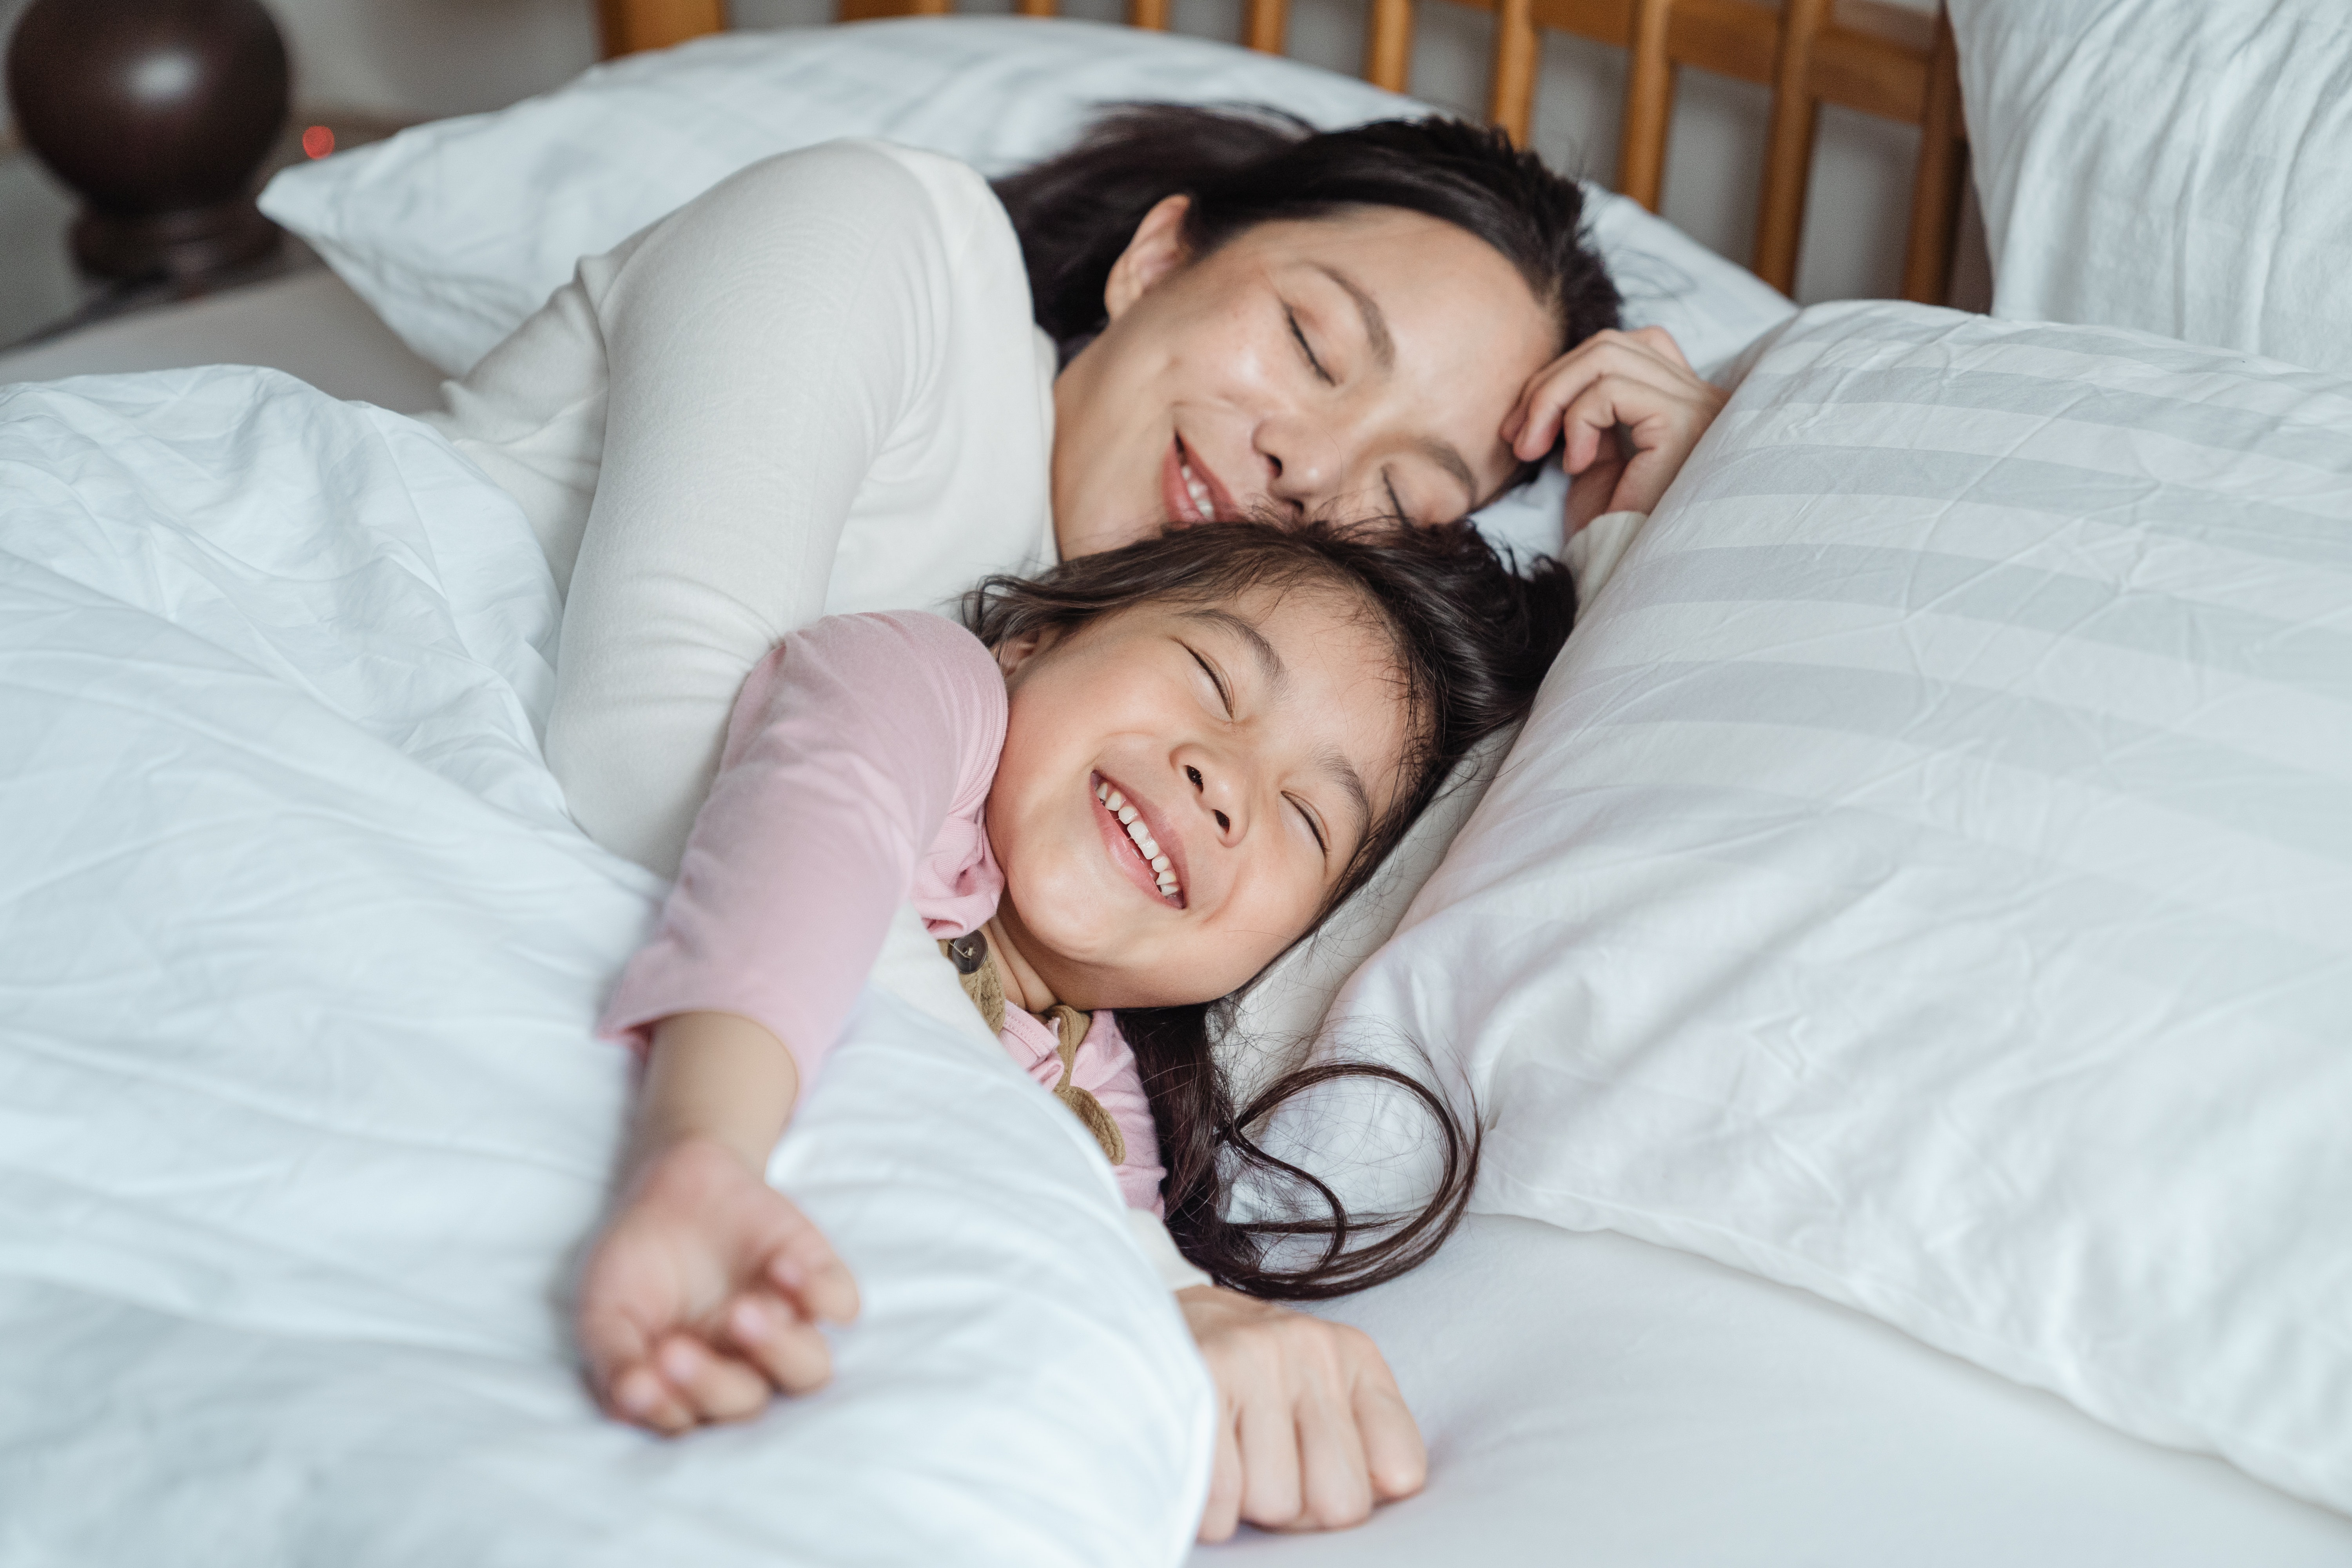 Read more about the article THE DOWNSIDE PART OF BEDWETTING